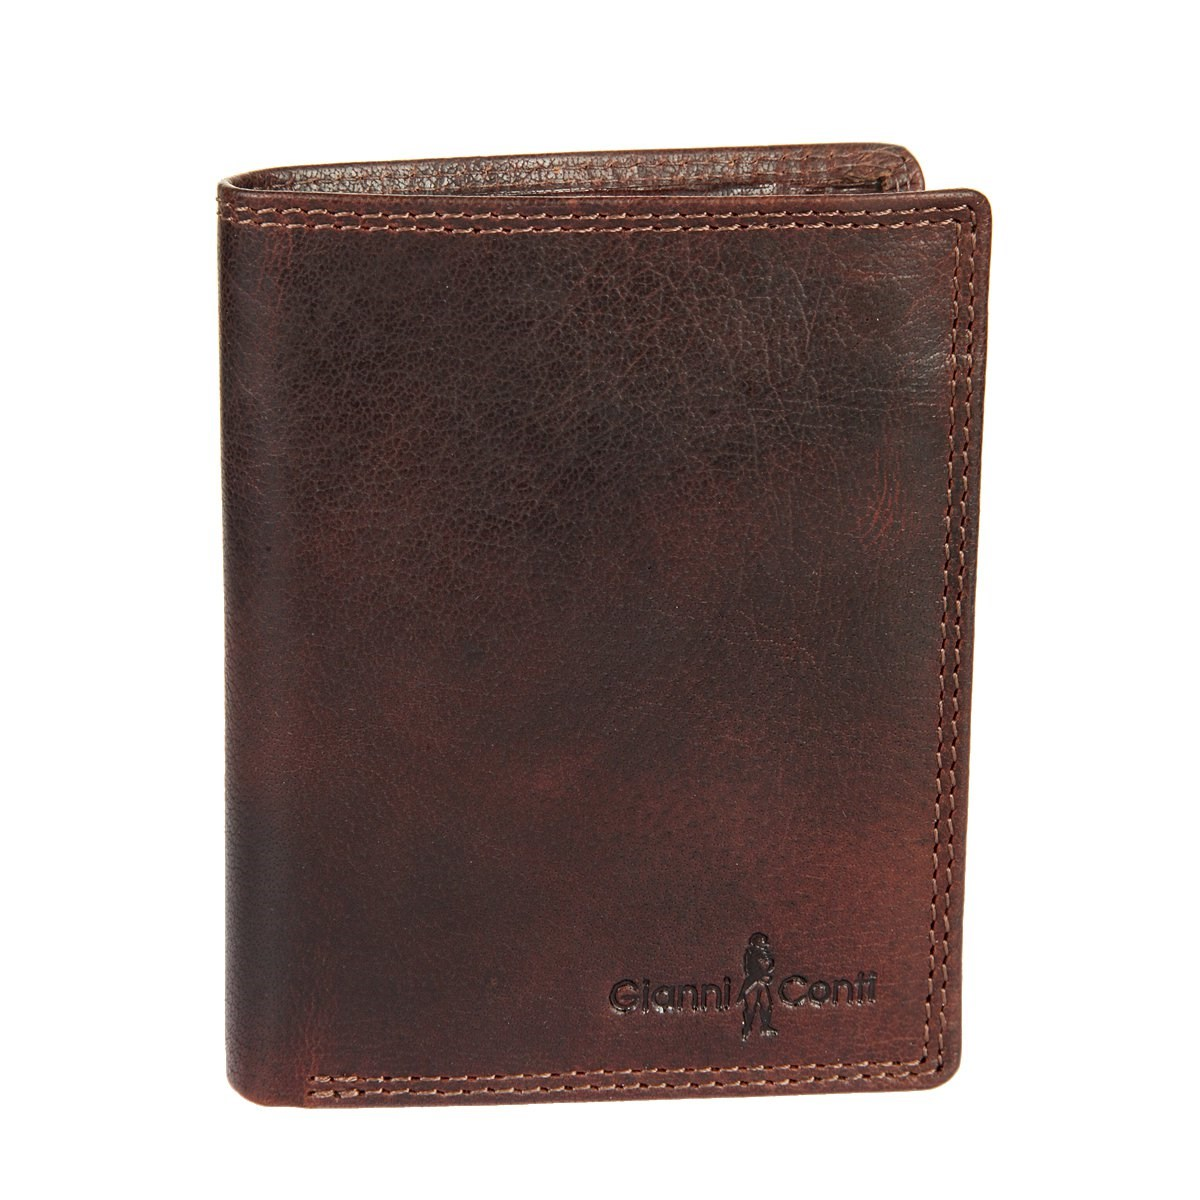 Coin Purse Gianni Conti 1077219 Tan simline vintage genuine crazy horse cow leather men men s long hasp wallet wallets purse zipper coin pocket holder with chain